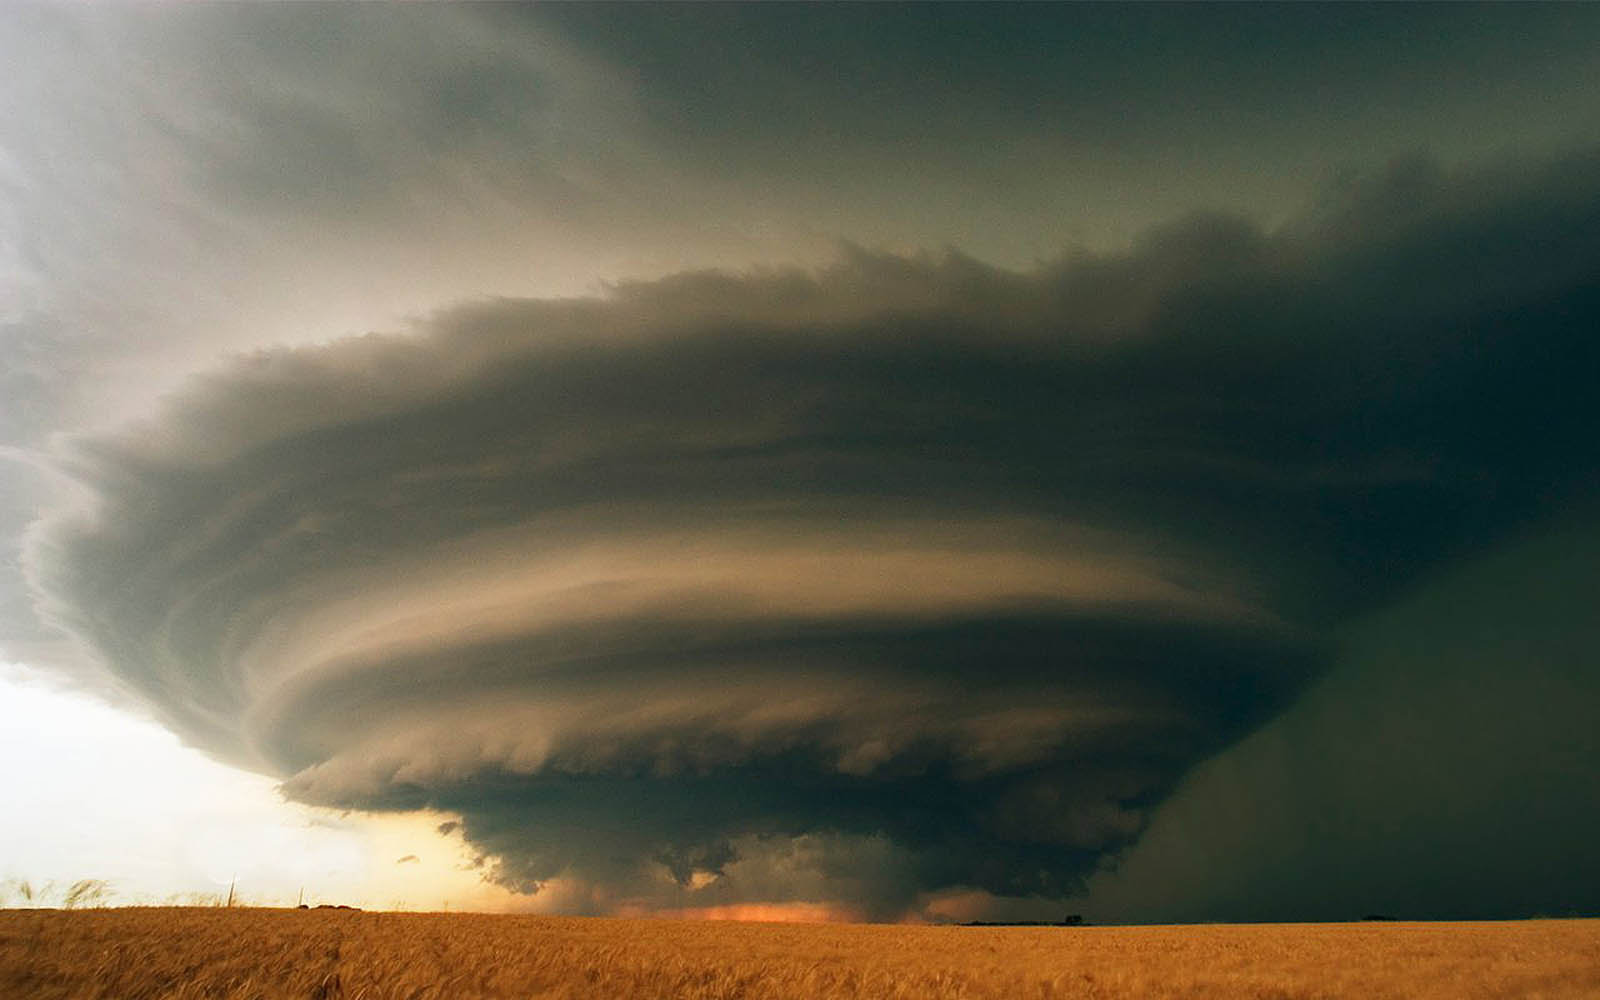 Tag Tornado Wallpapers Backgrounds Photos Picturesand Images for 1600x1000